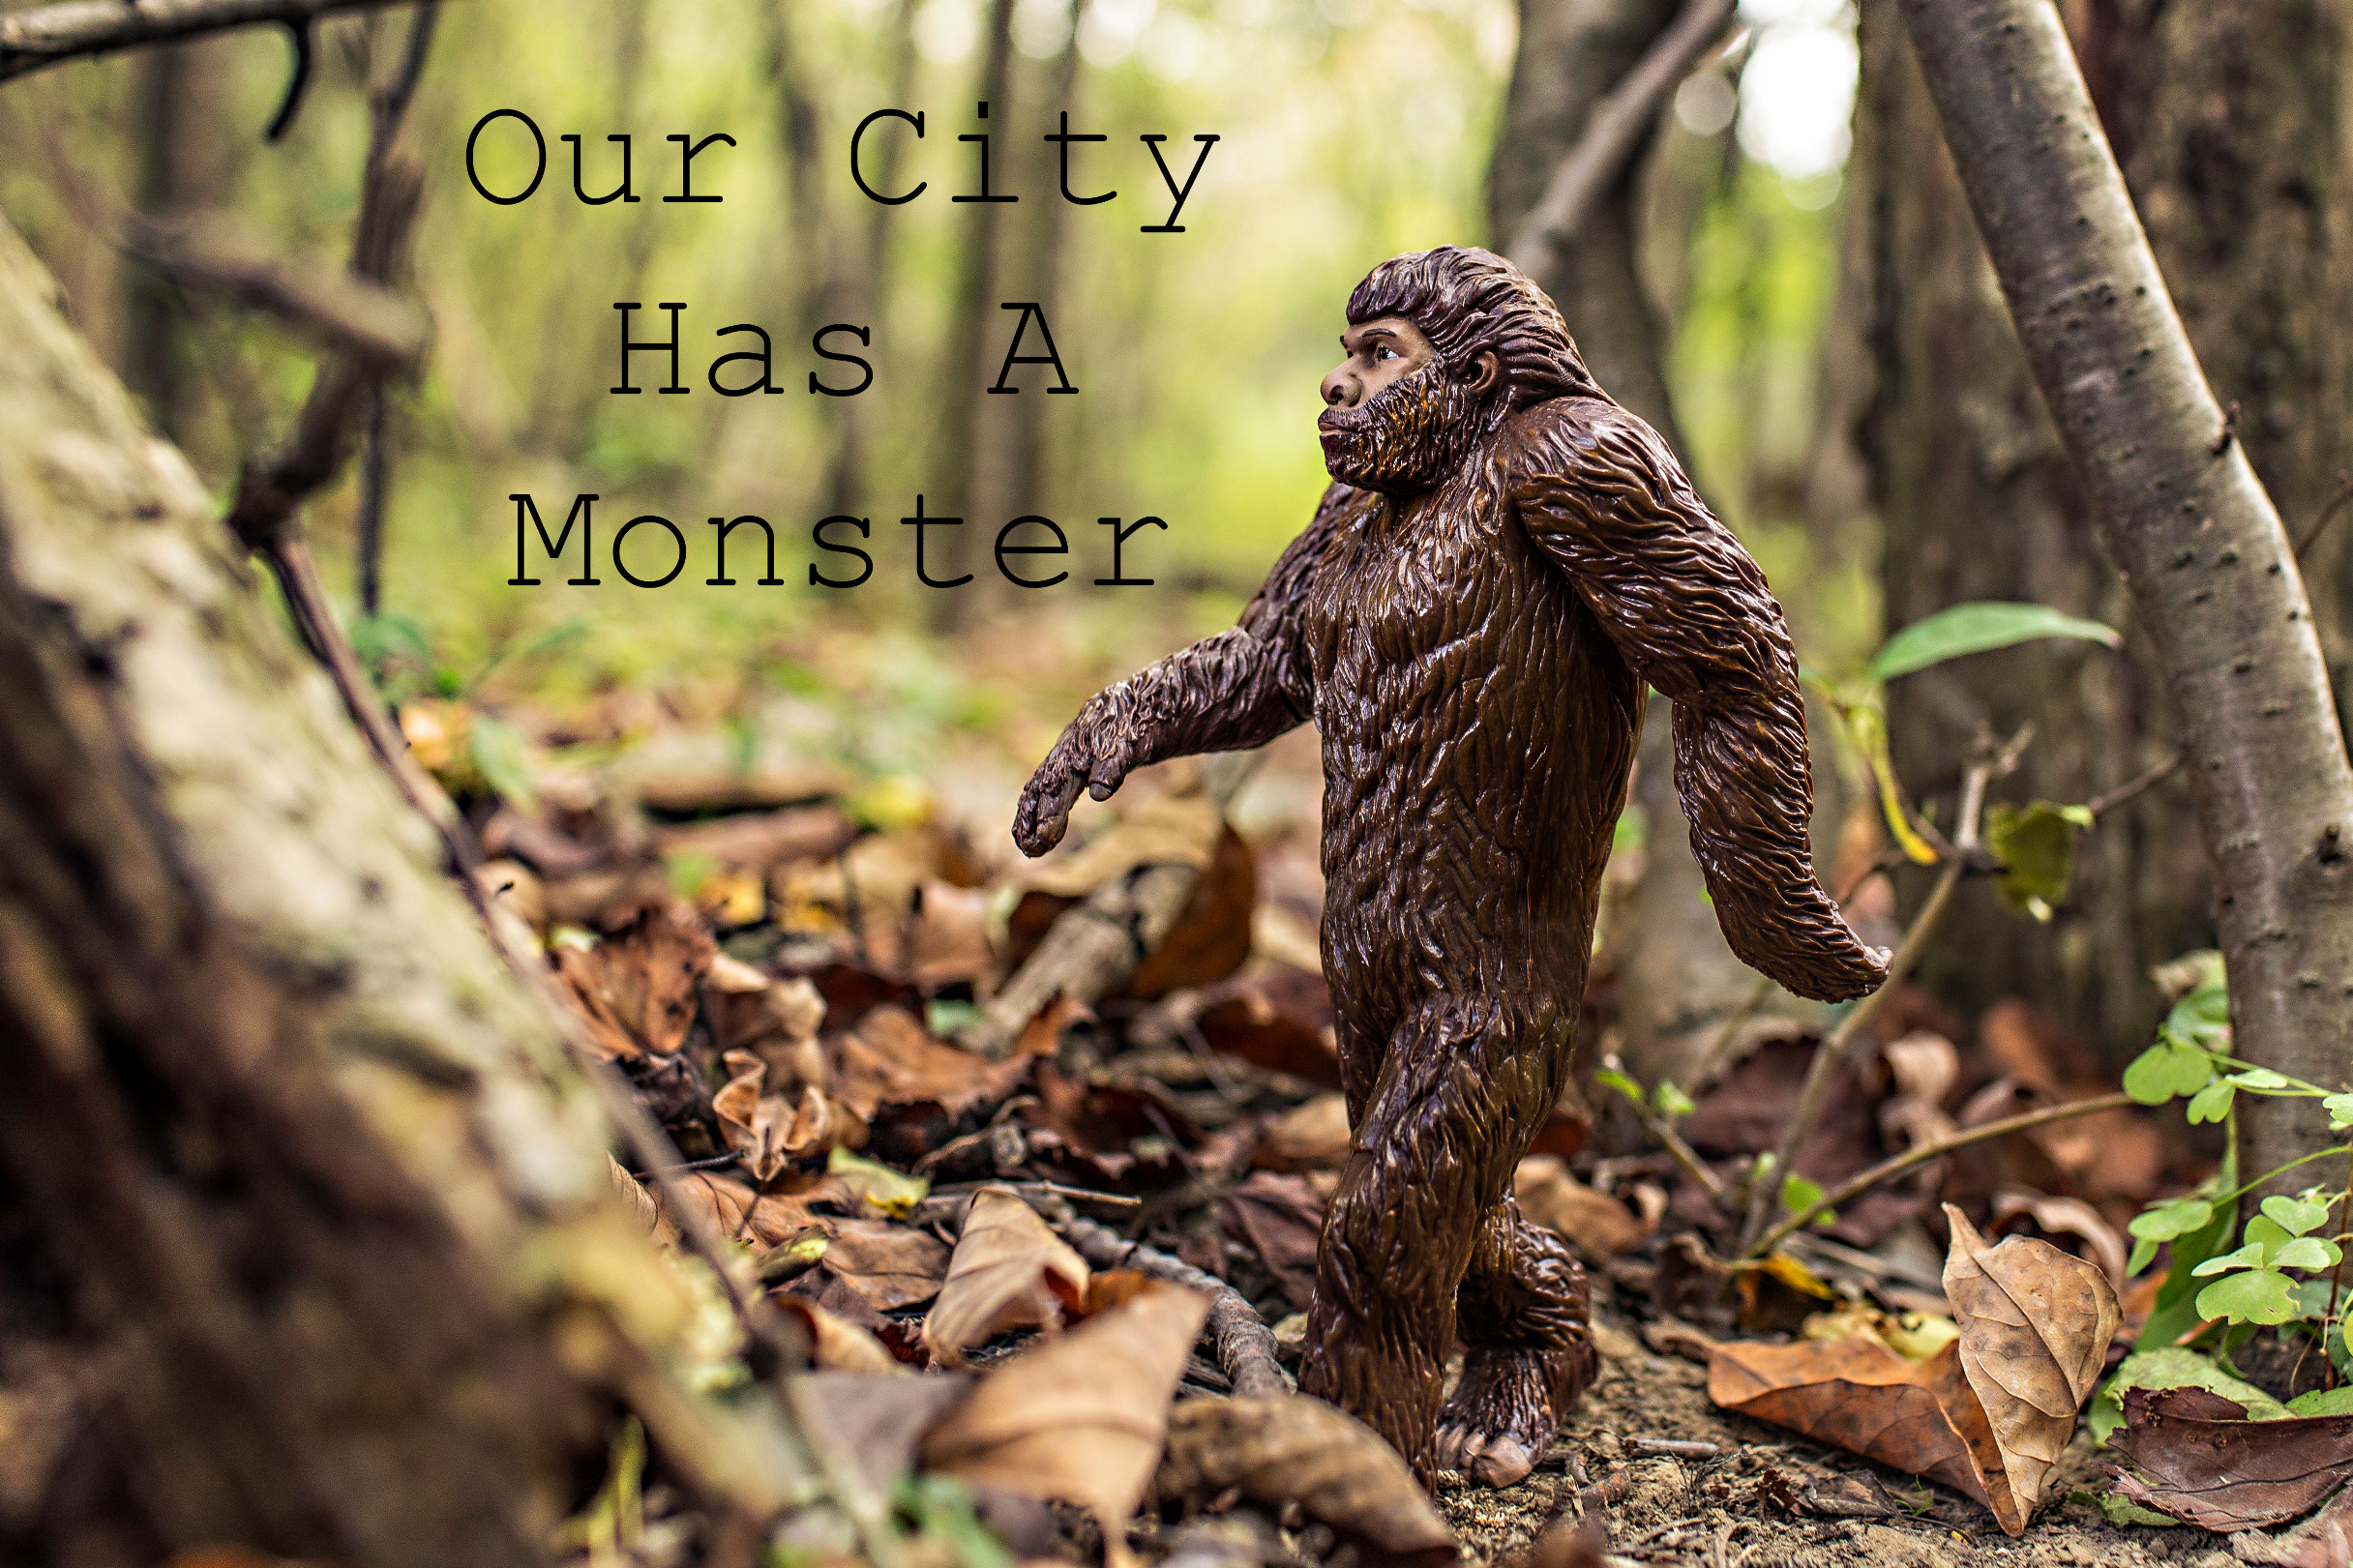 Our City Has A Monster Main Image.png